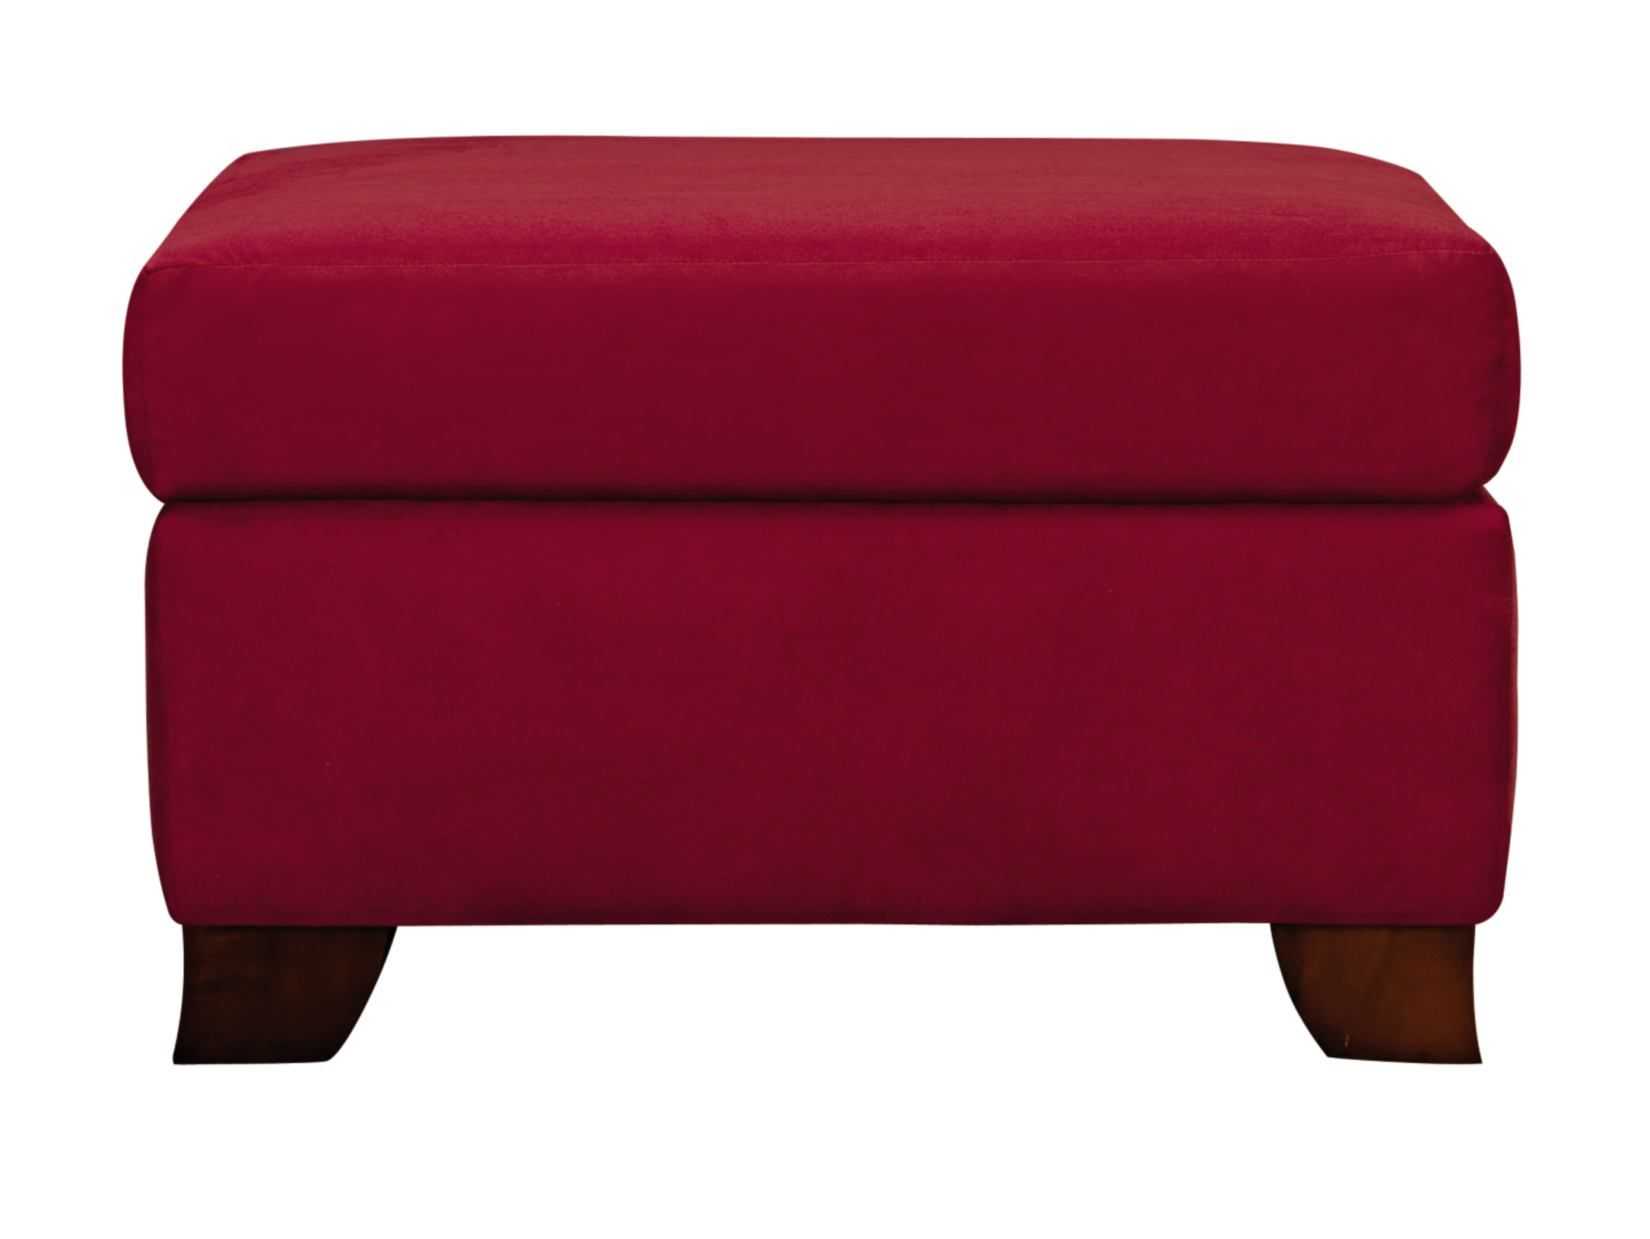 adrian red ottoman value city furniture new house pinterest